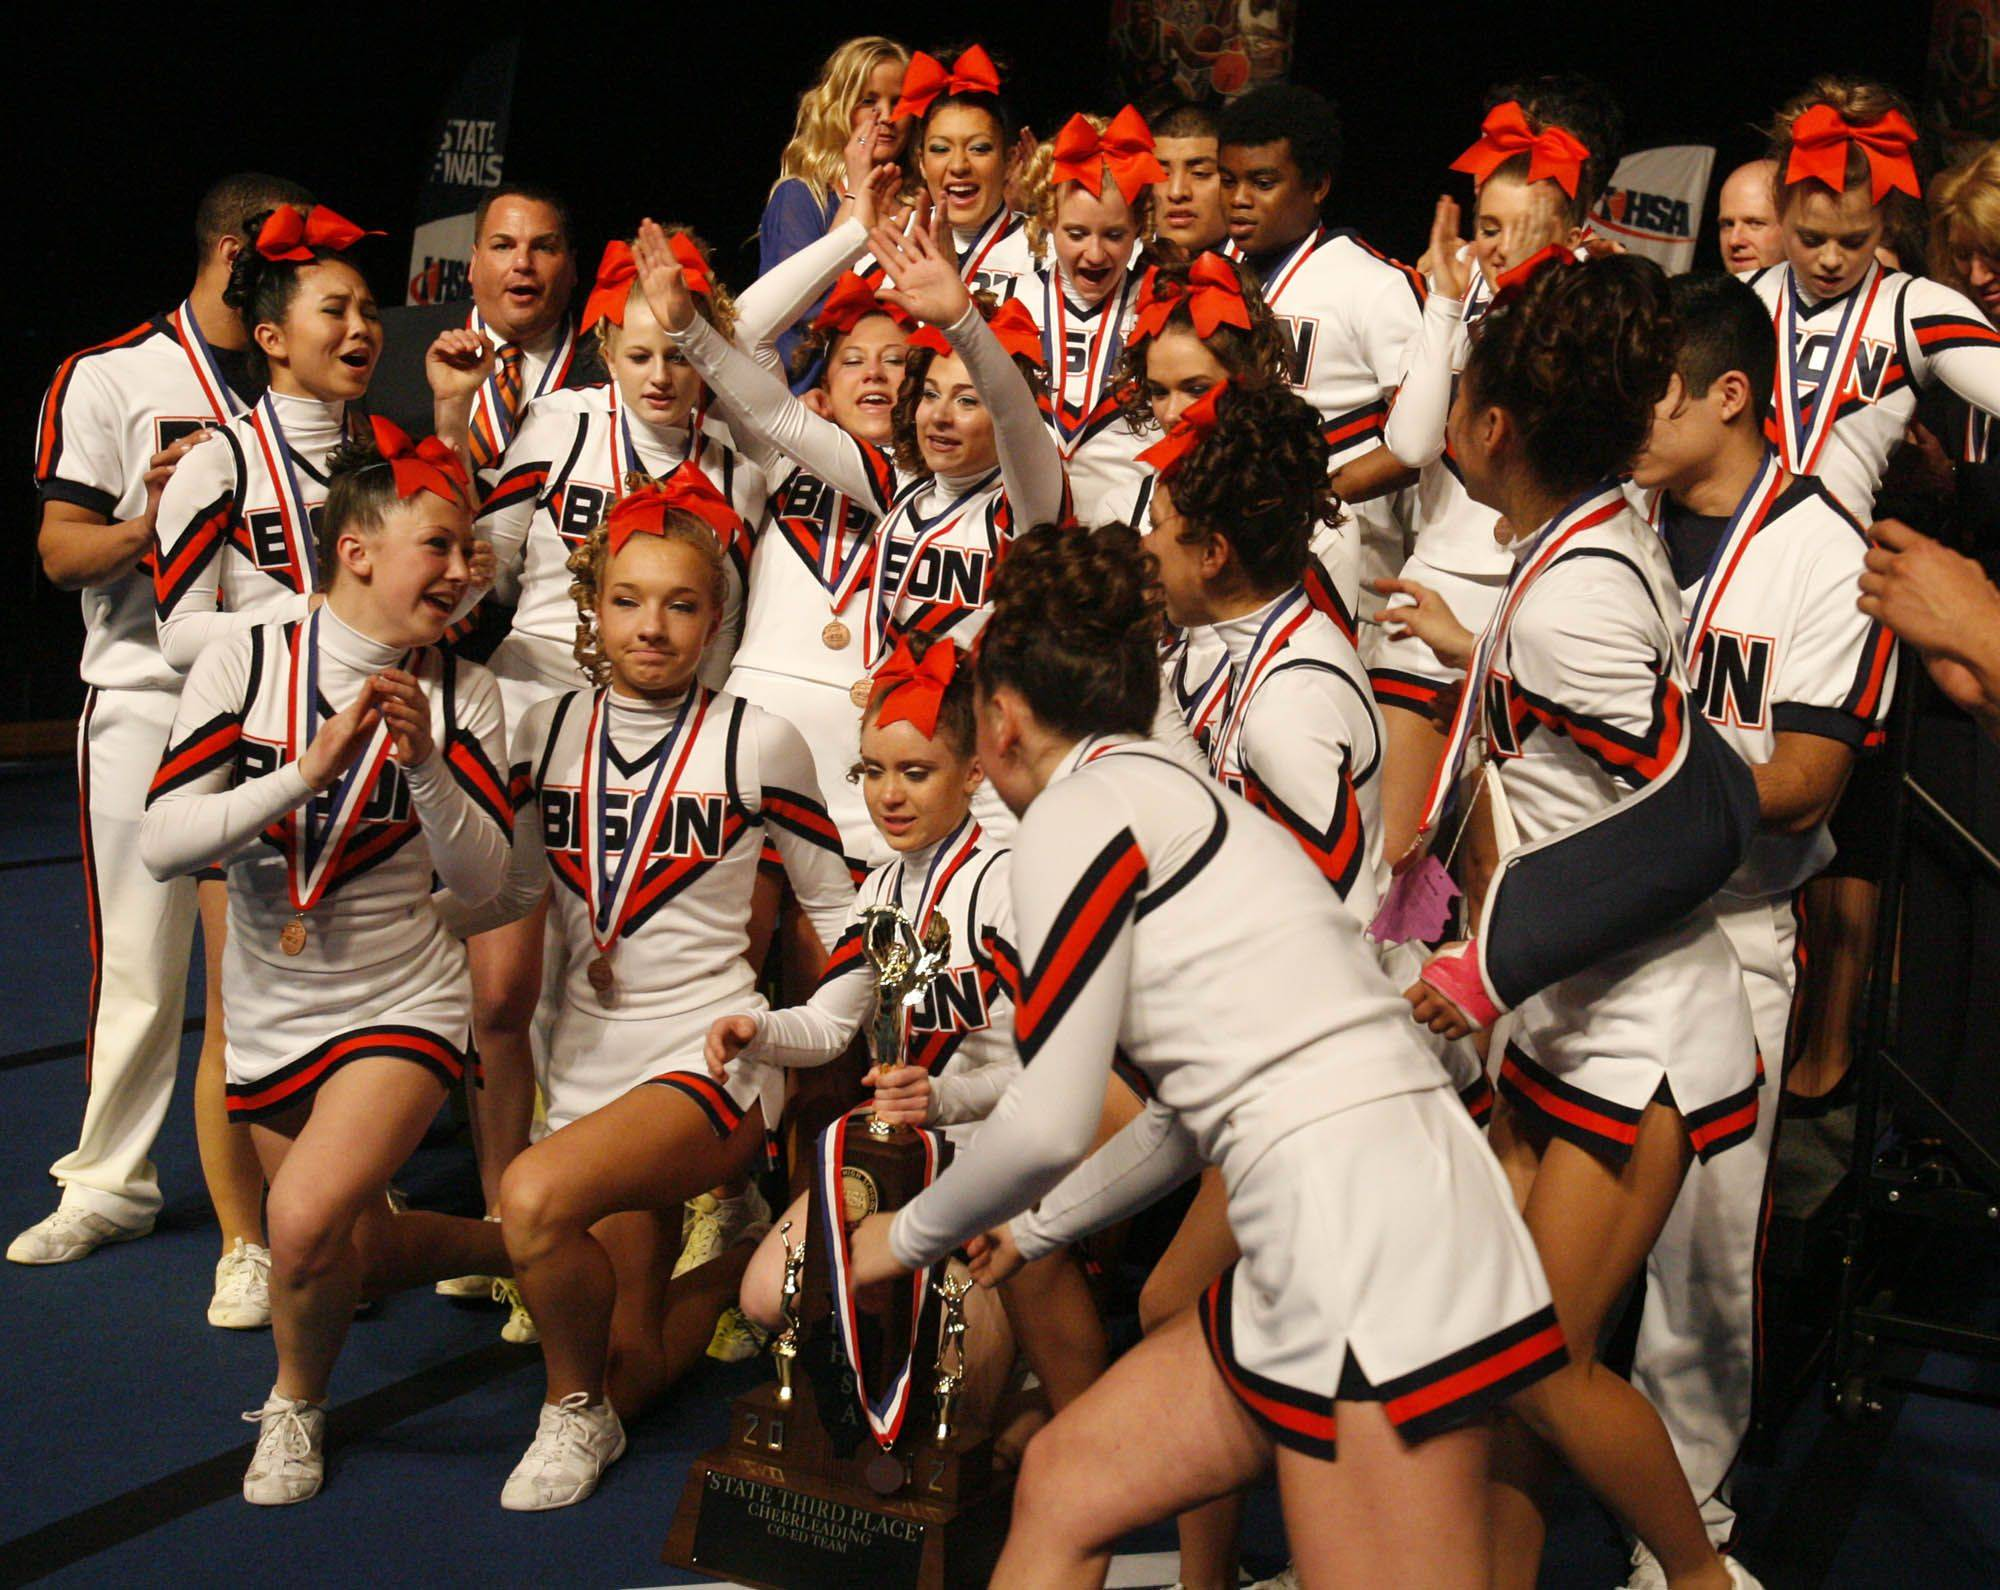 Buffalo Grove celebrates with the 3rd place trophy for coed division at IHSA cheerleading state finals at U.S. Cellular Coliseum in Bloomington on Saturday, February 4th.